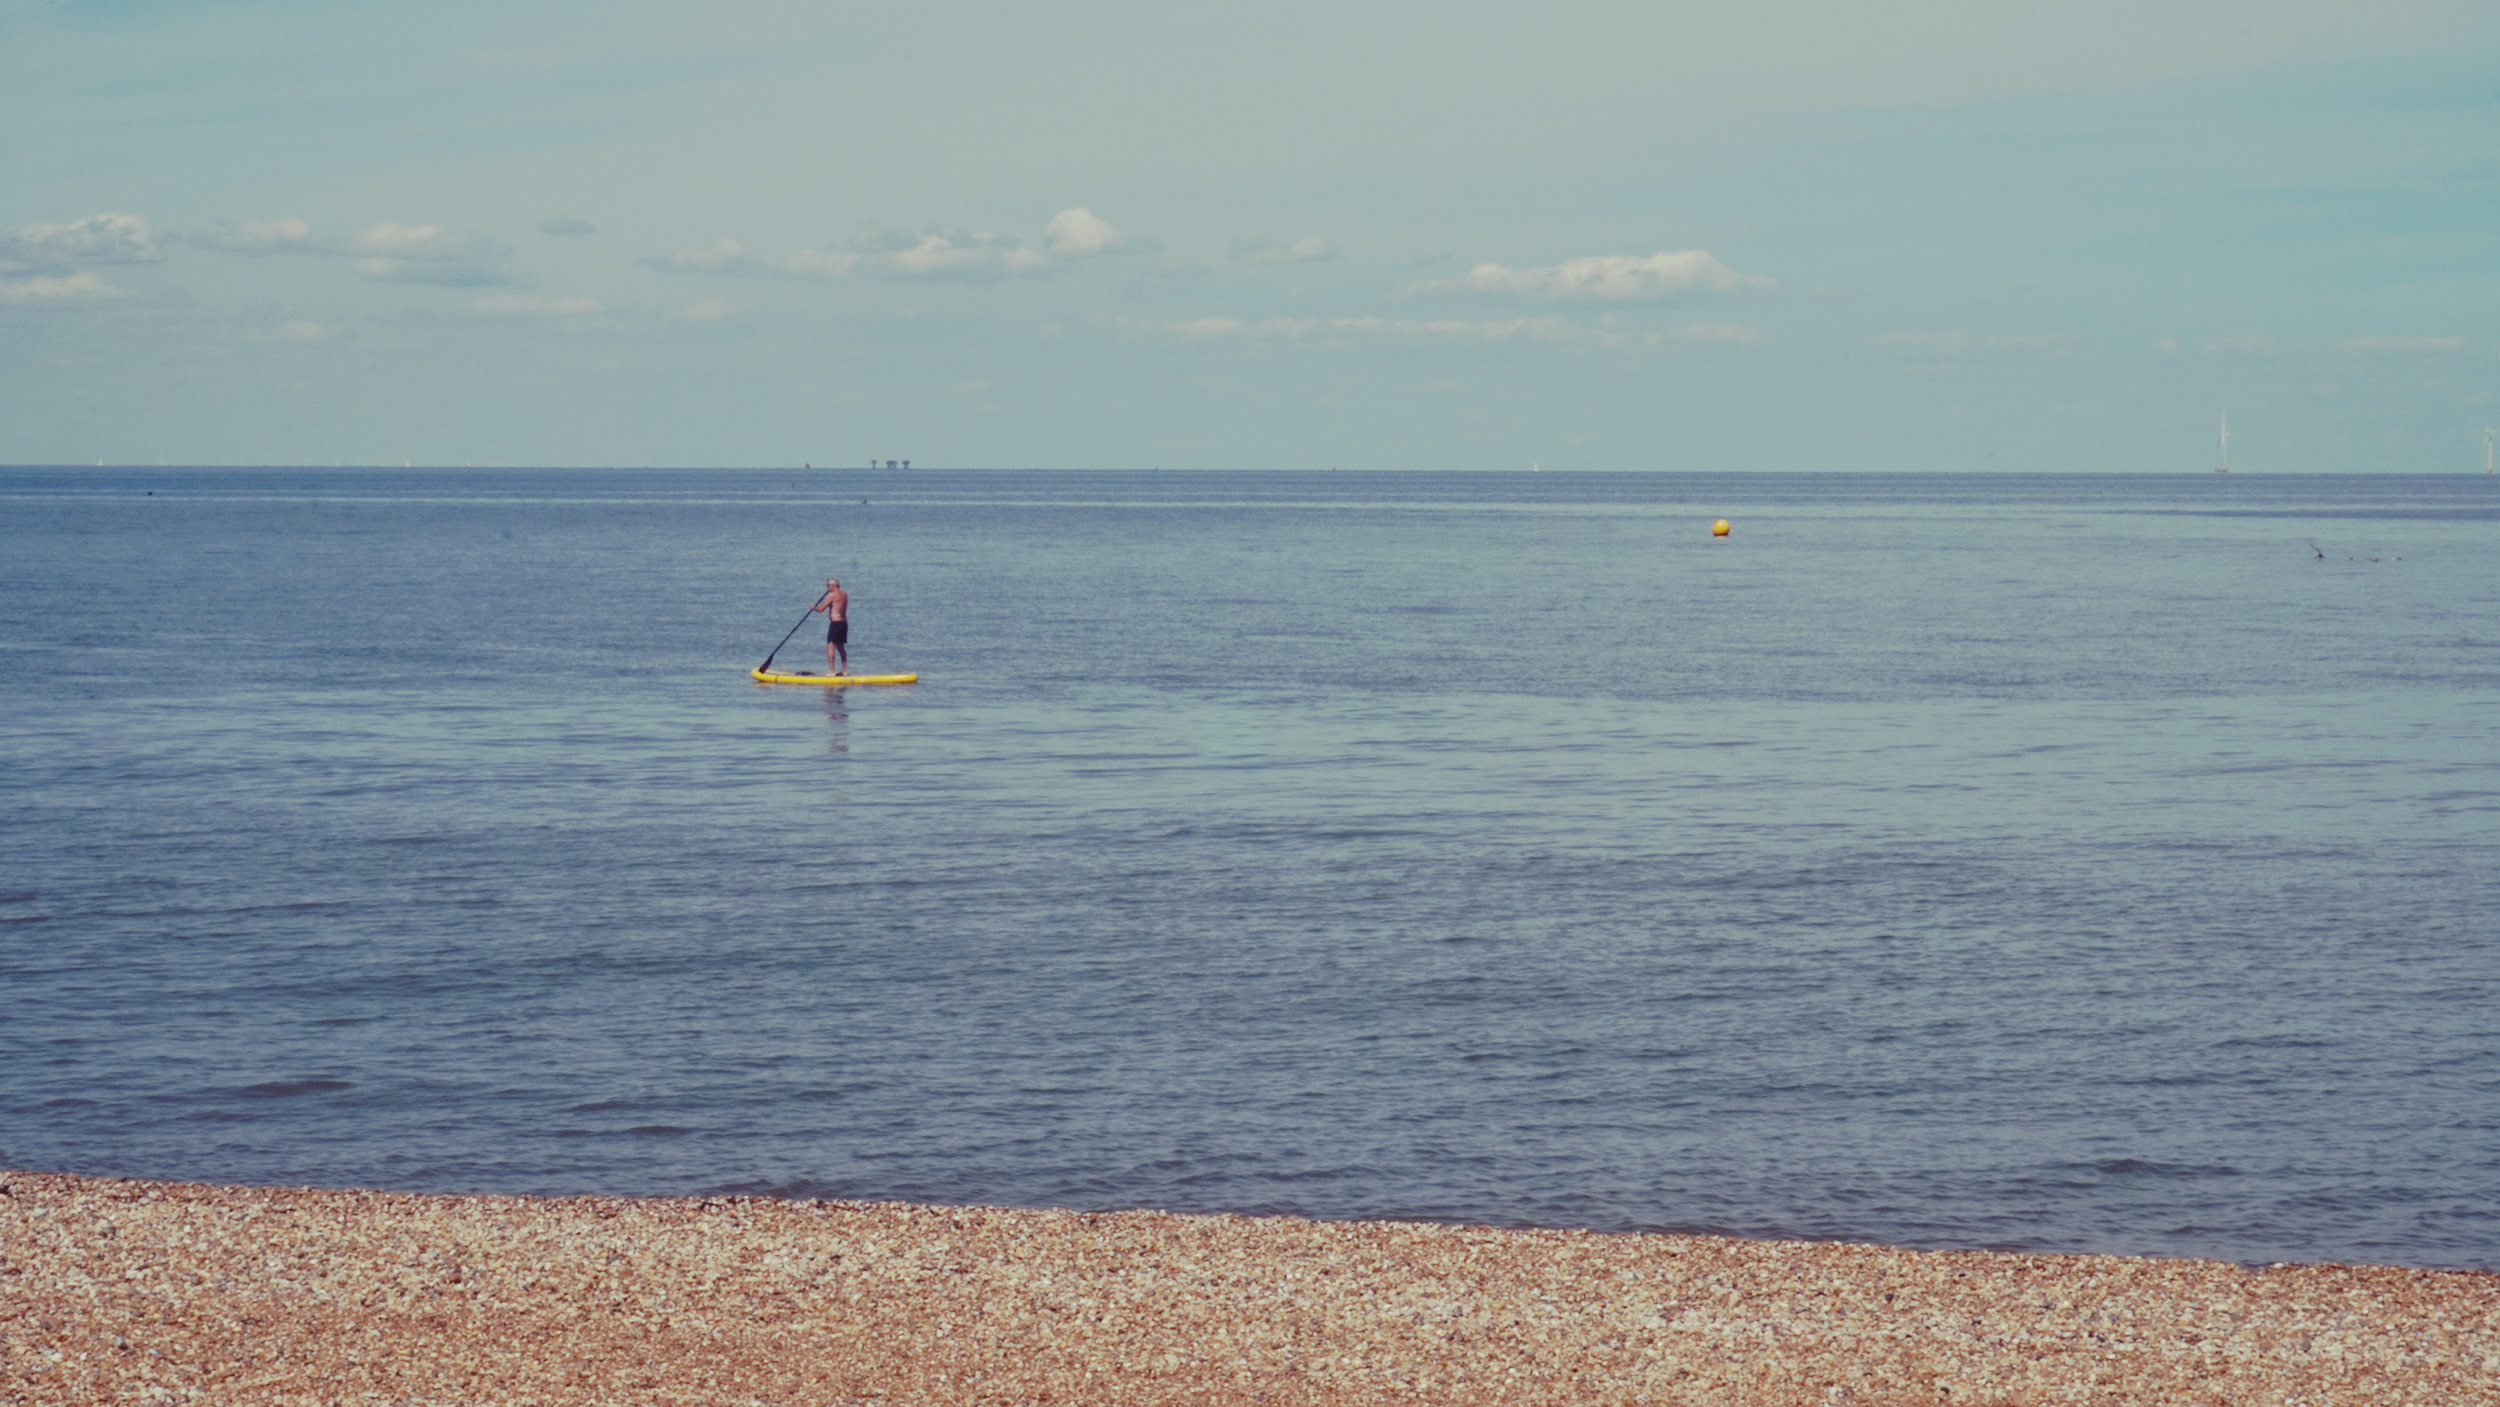 a man out at sea with a stand-up paddle board